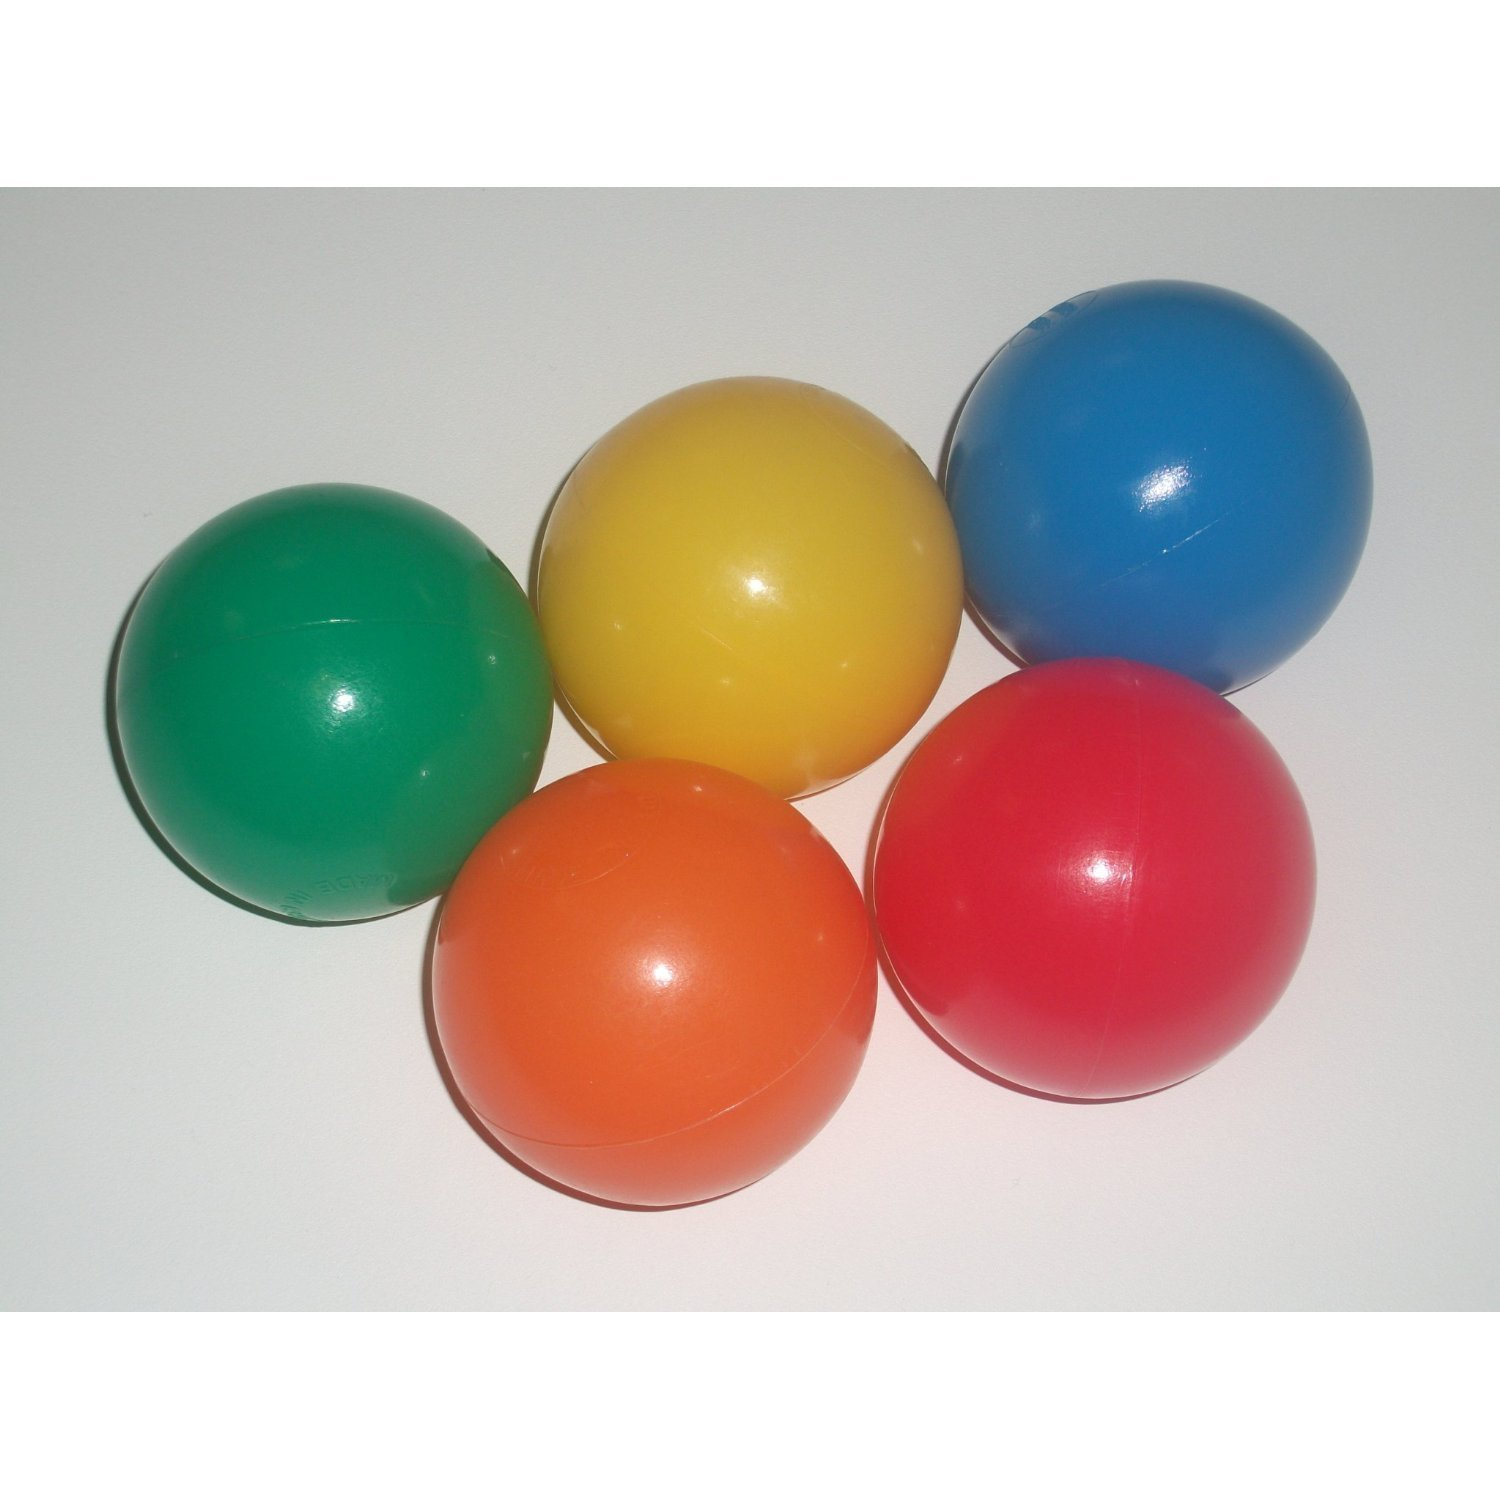 My Balls Pack of 300 Jumbo 3'' Crush-Proof Ball Pit Balls - 5 Bright Colors, Phthalate Free, BPA Free, PVC Free, Non-Toxic, Non-Recycled Plastic (Standard Home Grade, Pack of 300) by My Balls